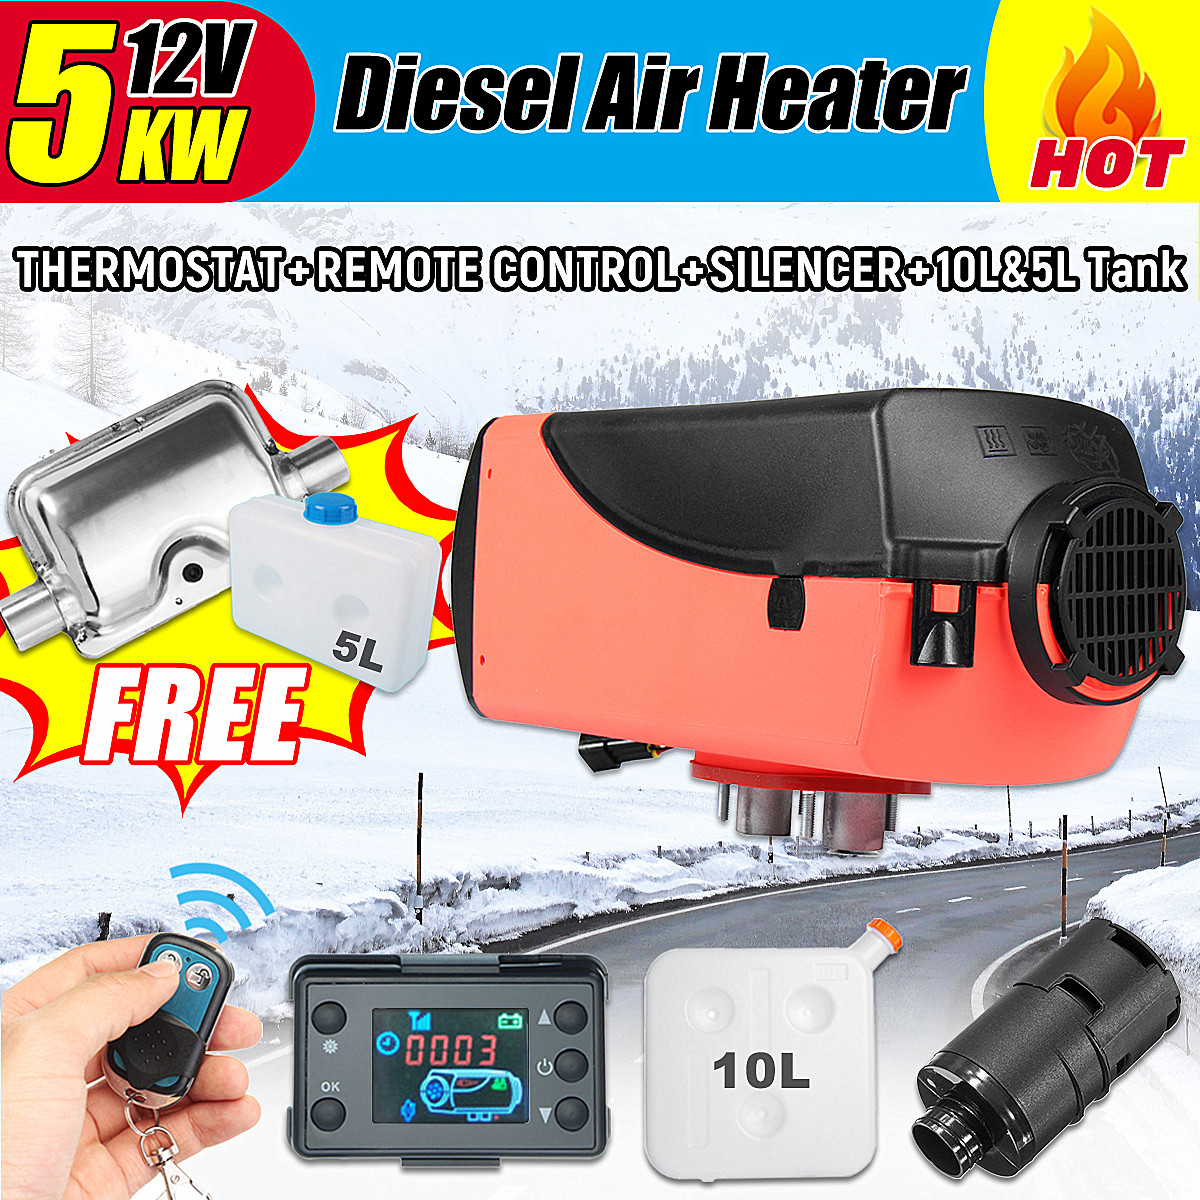 12V 5000W LCD Monitor Air diesels Fuel Heater Single Hole 5KW For Boats Bus Car Heater With Remote Control and Silencer And Tank цена